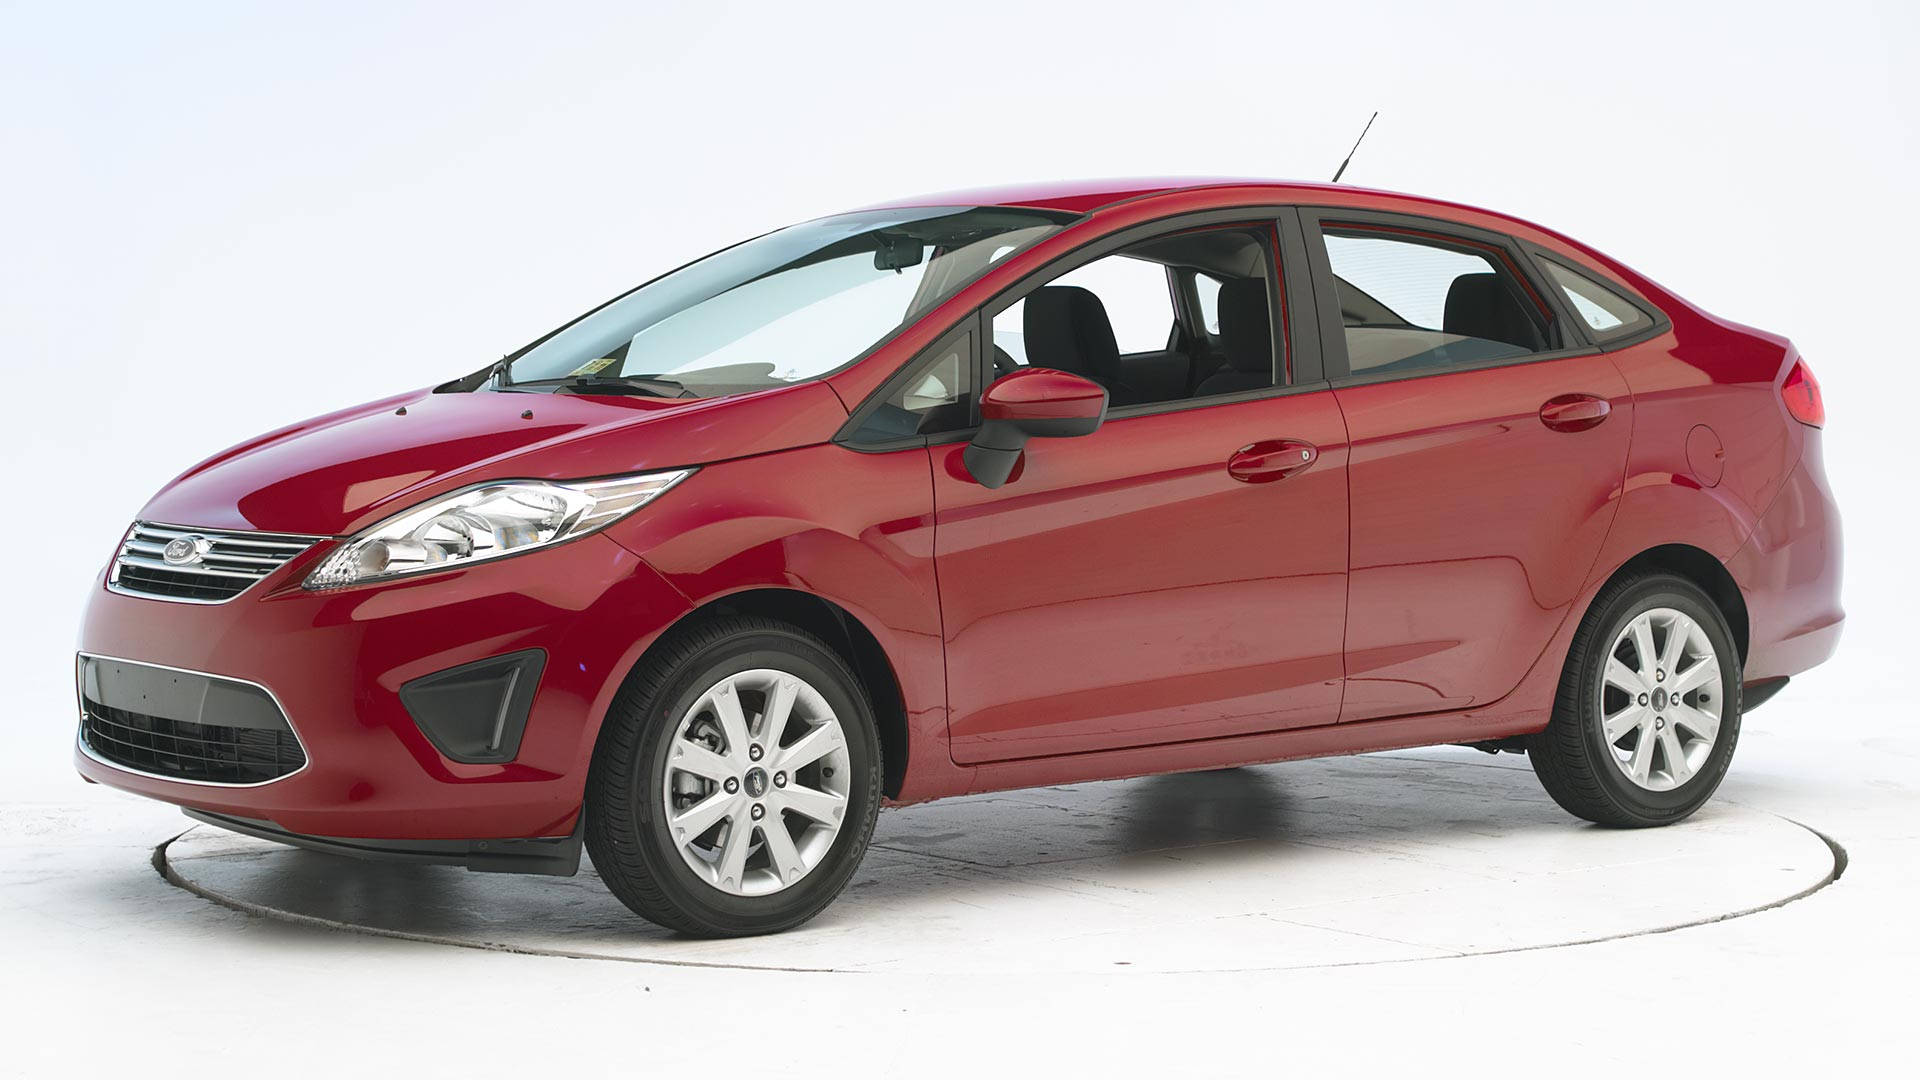 2011 Ford Fiesta 4-door sedan